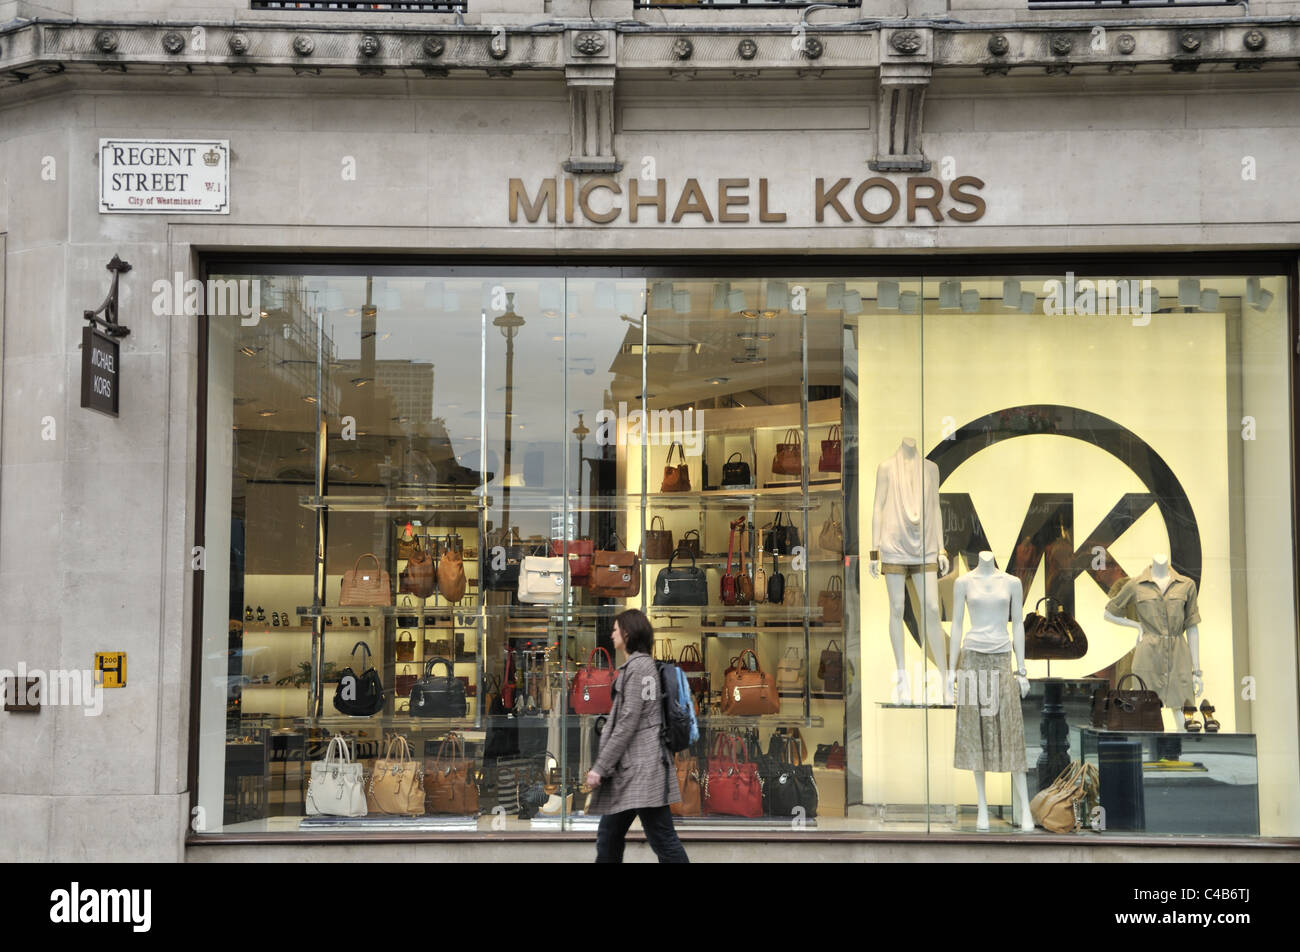 6d04e8e9a2a1 St Michael Kors fashion store on Regent Street, London Stock Photo ...